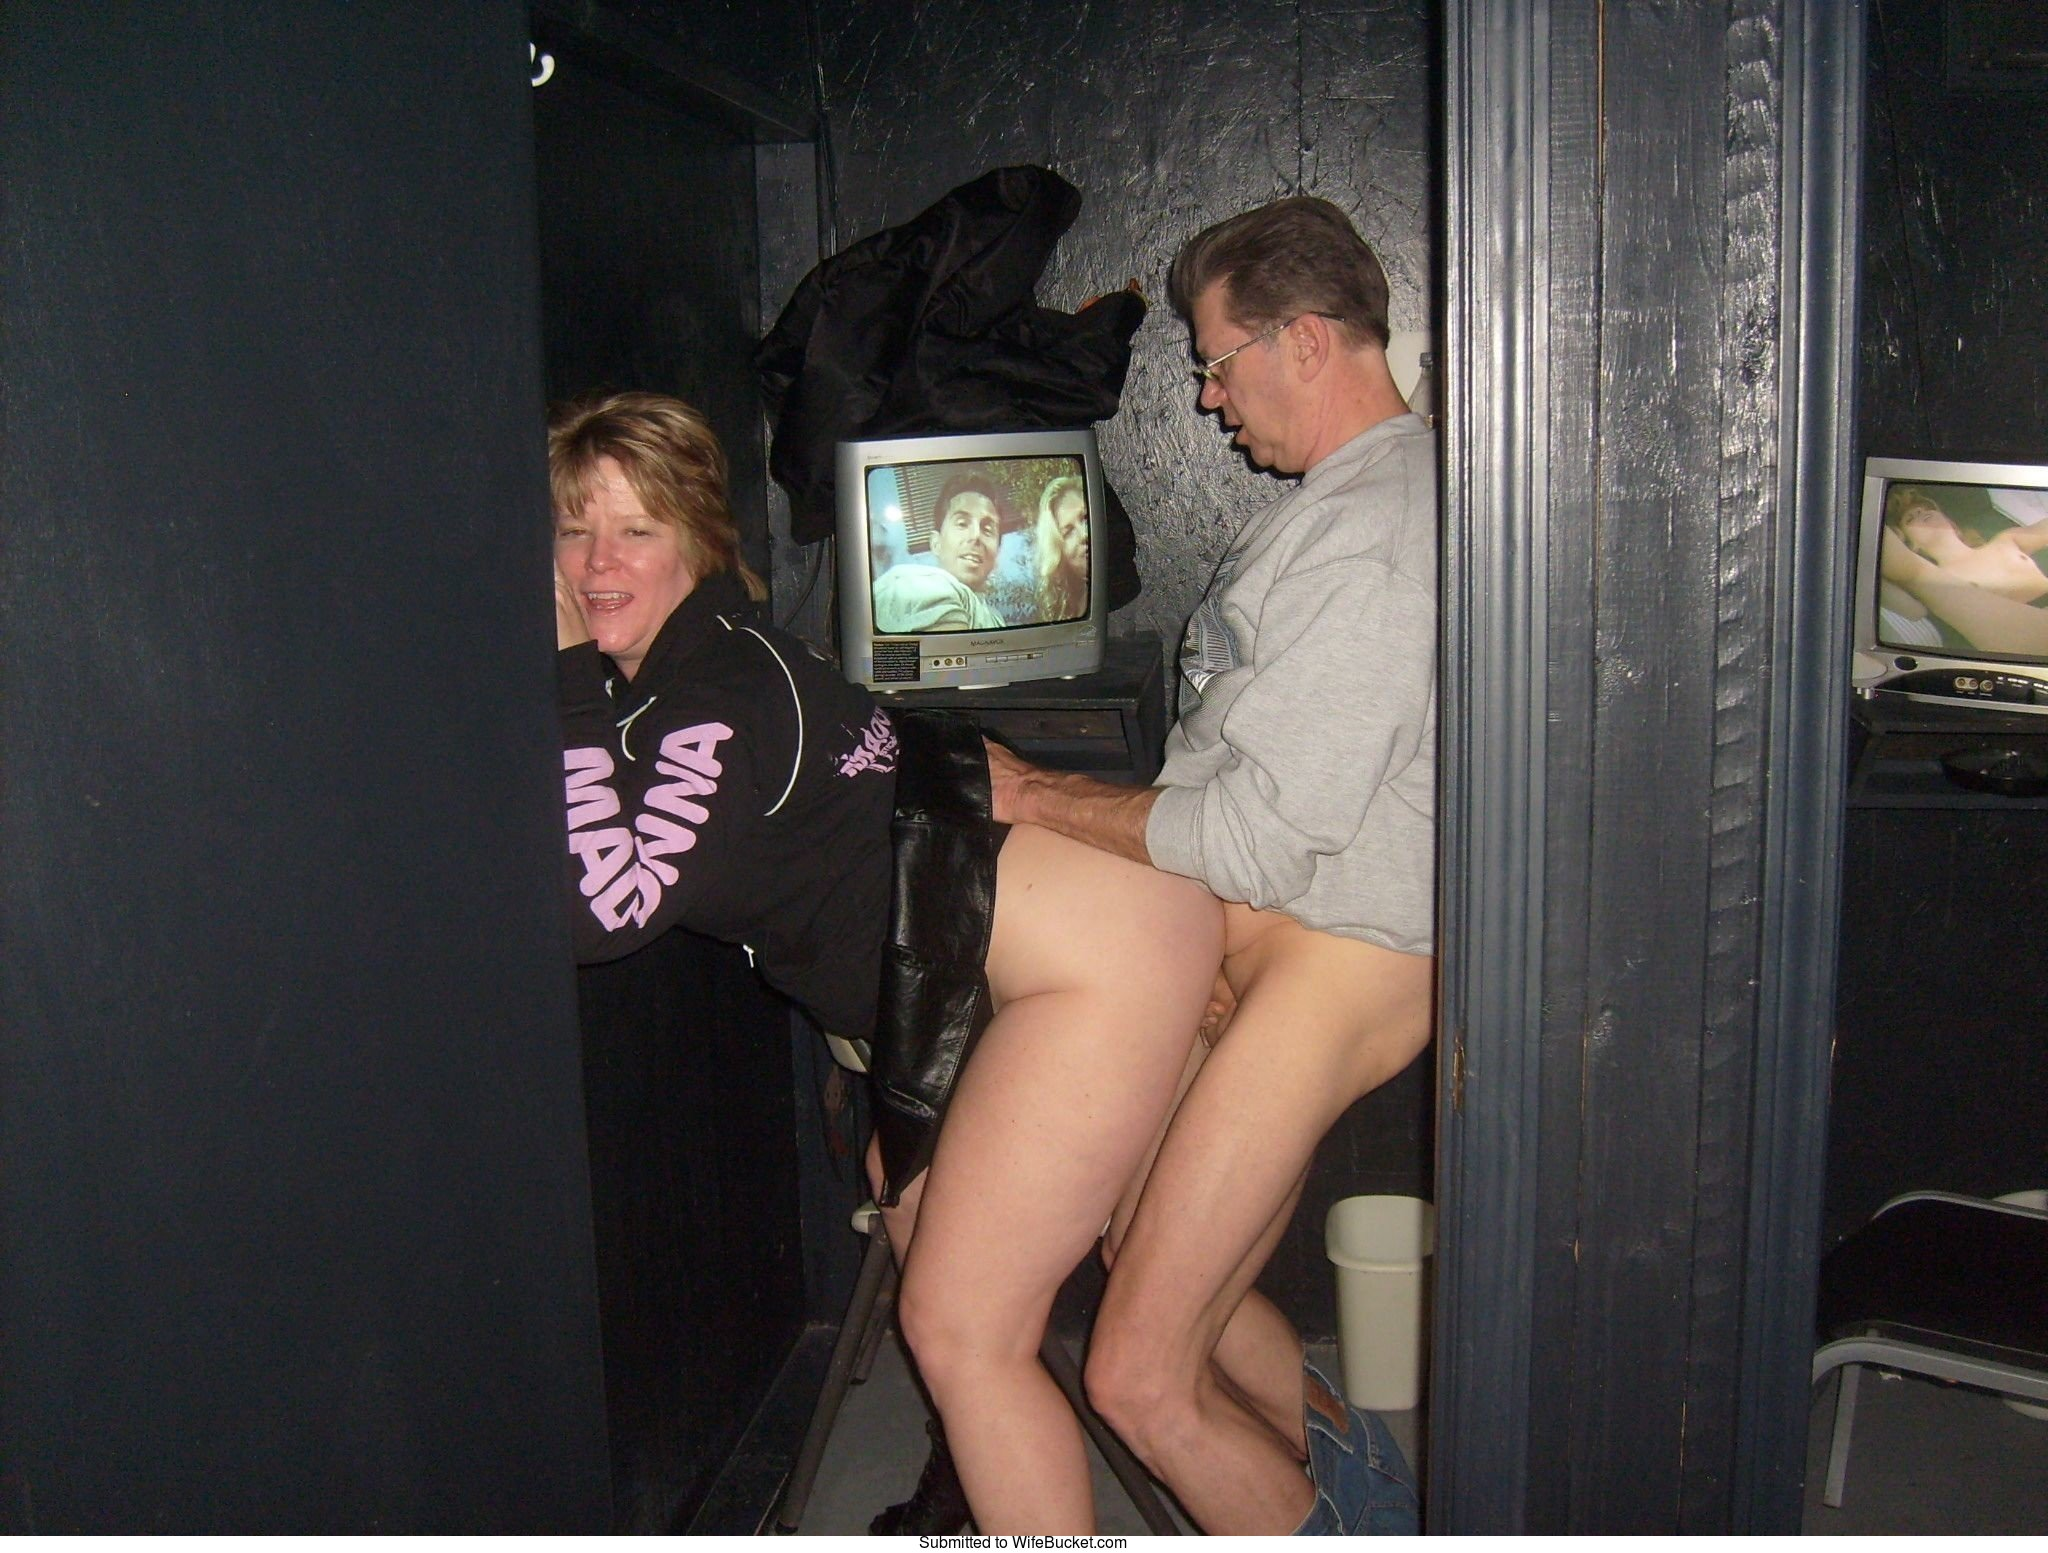 adult theater sex pics